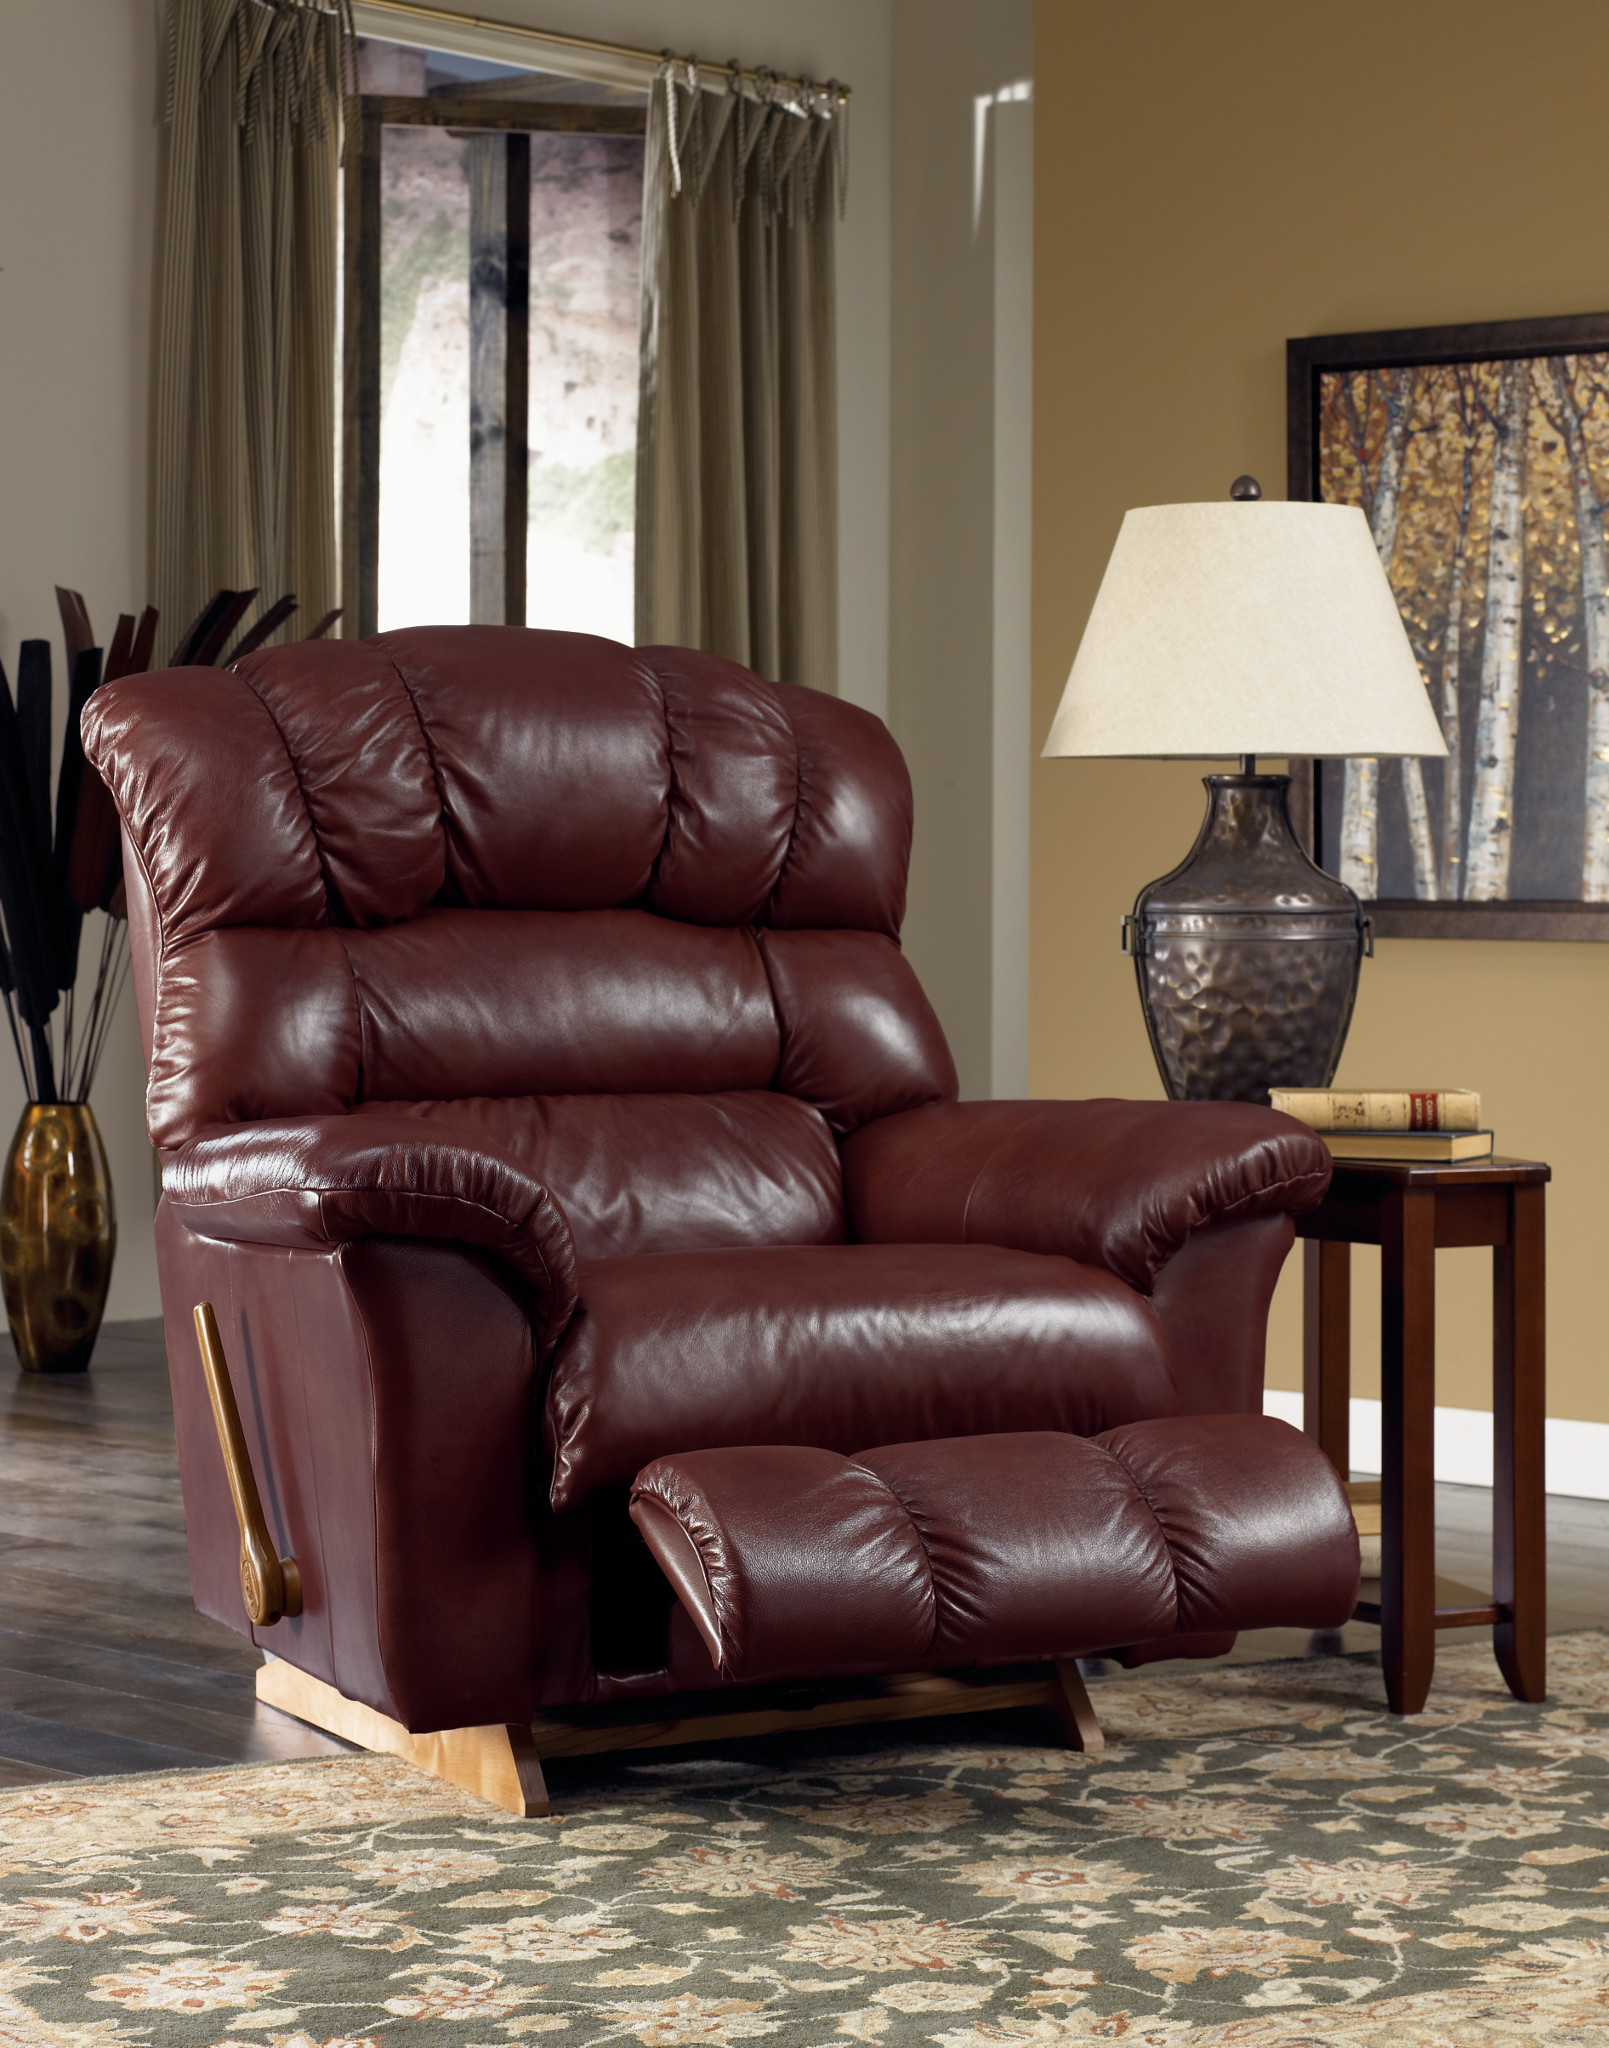 Sofa Astounding Lazy Boy Couches Leather Lazy Boy Couches Lazy Boy - Lazy boy living room furniture